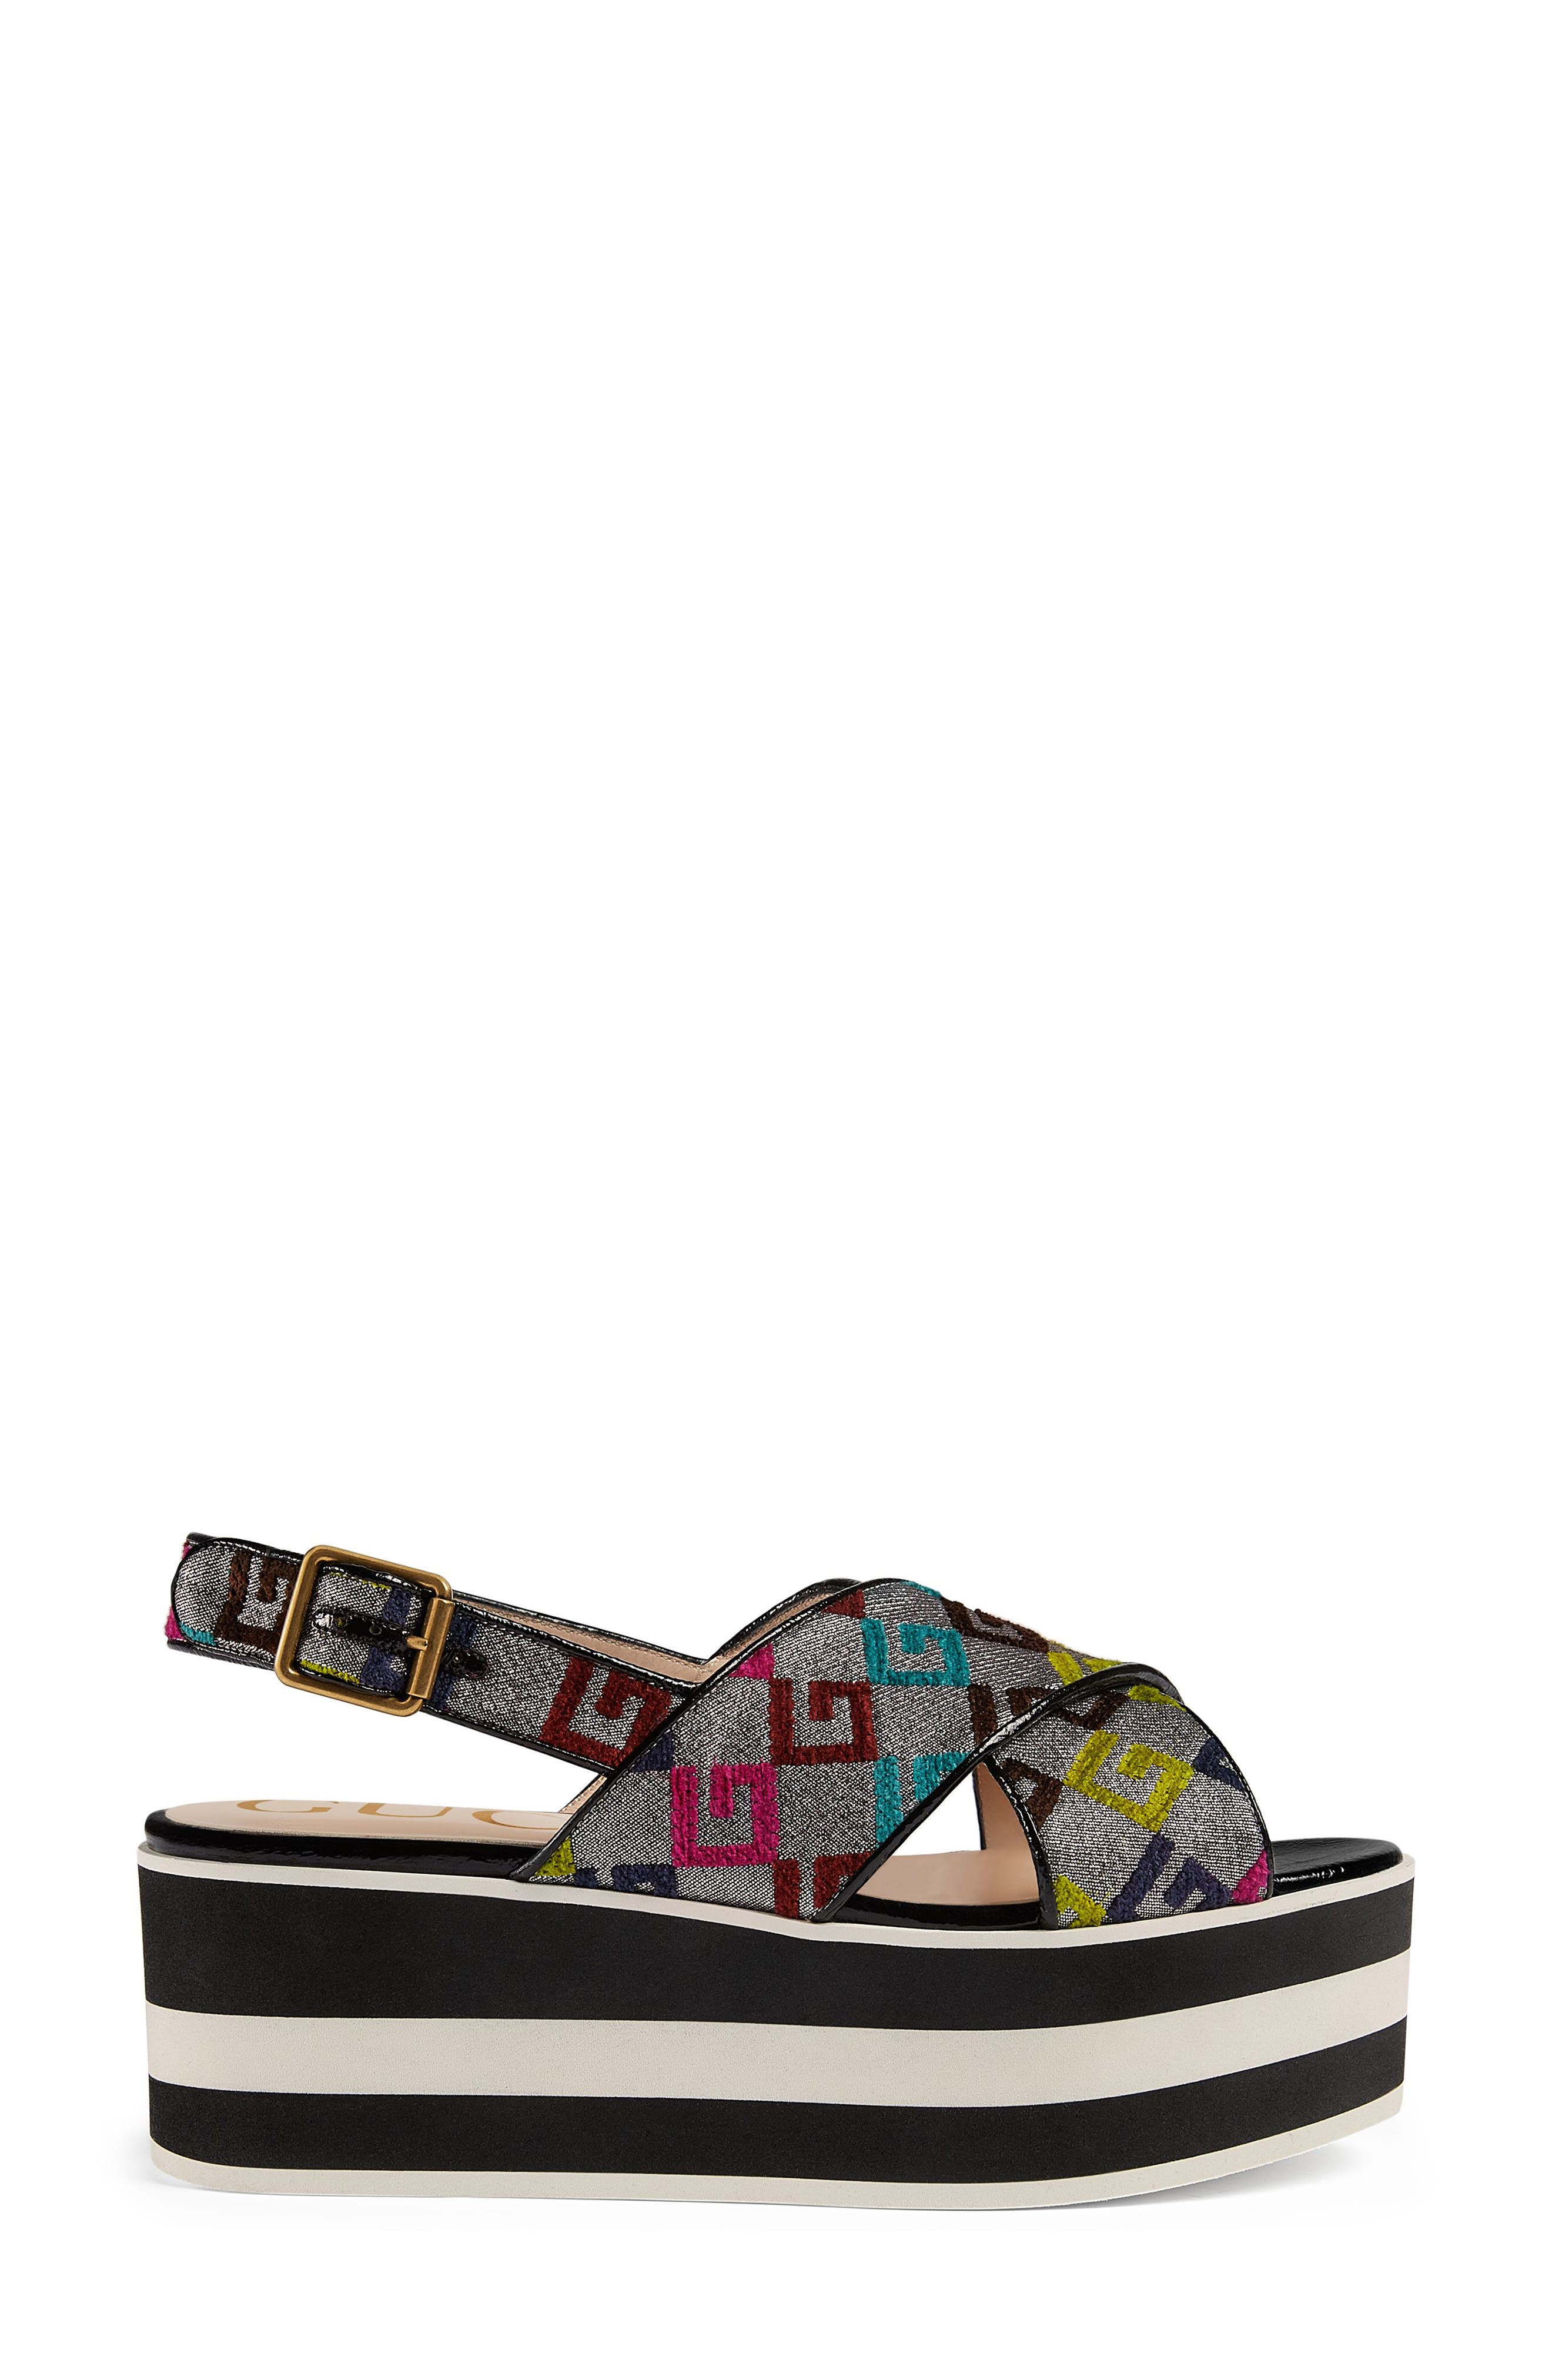 Peggy Flatform Sandal,                             Alternate thumbnail 3, color,                             Argento